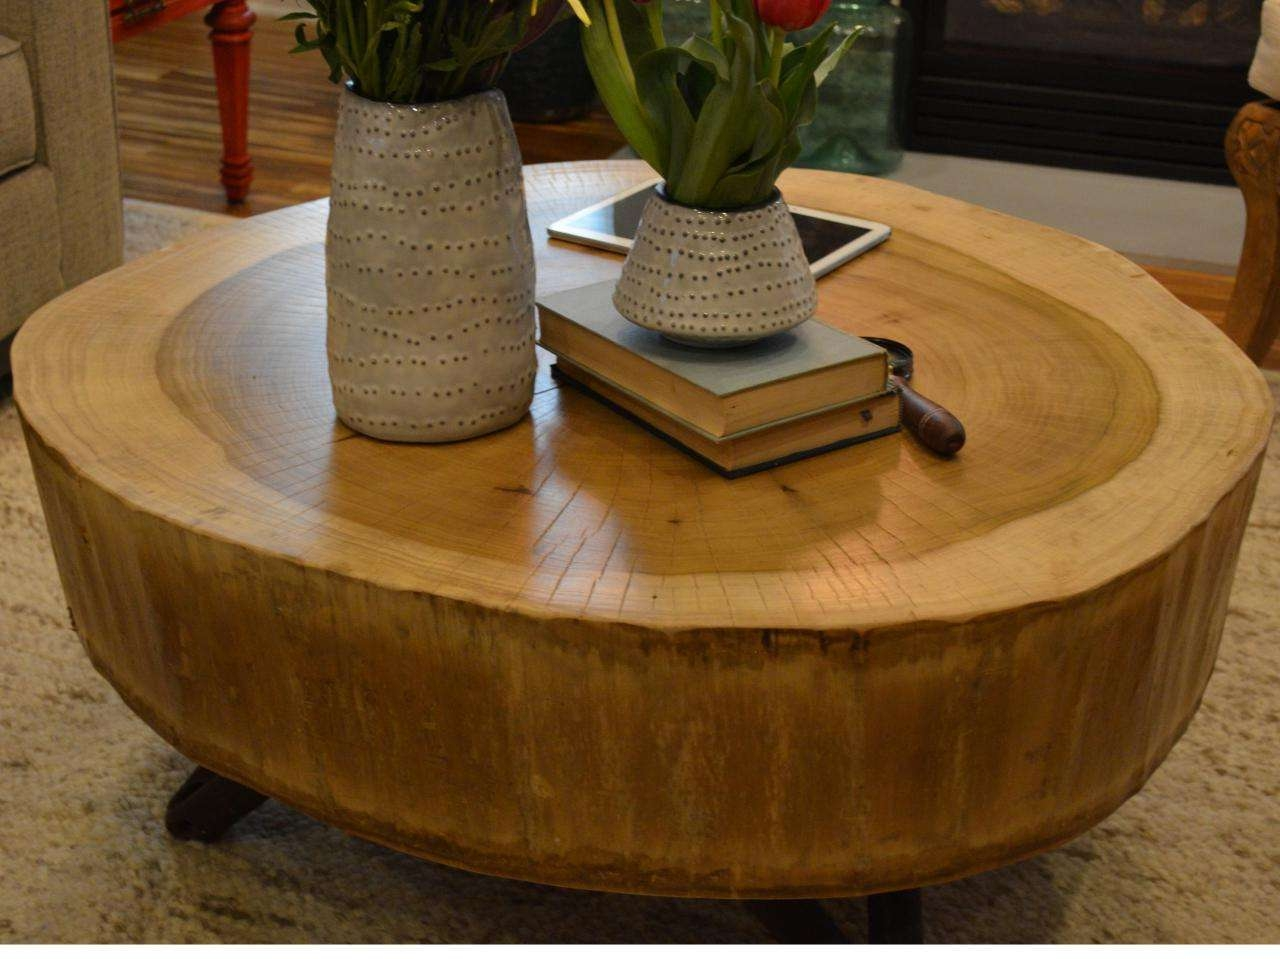 Diy Intended For Recent Tree Trunk Coffee Table (View 5 of 20)